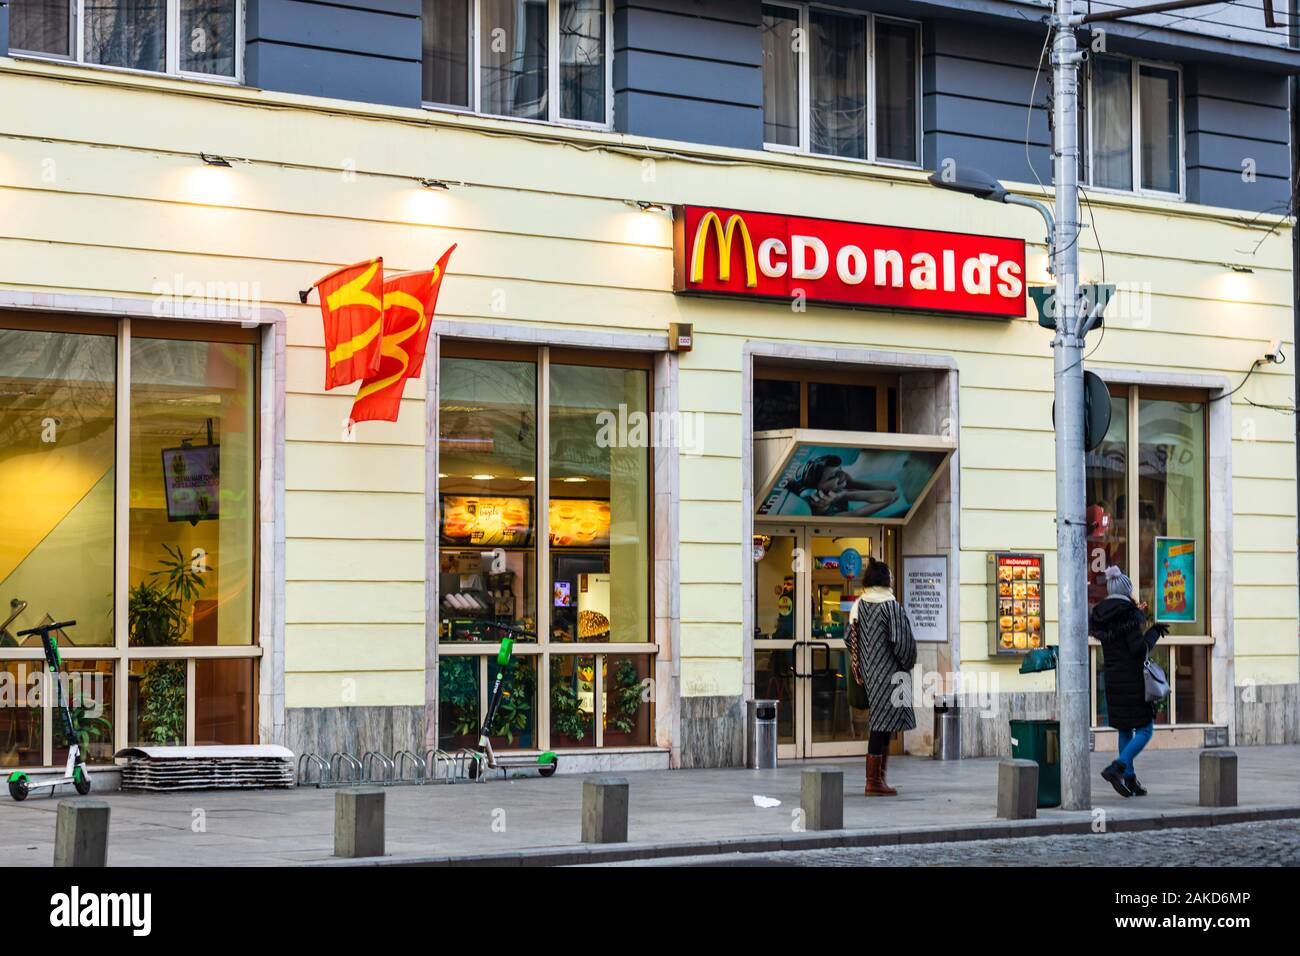 Mcdonald S Logo On The Wall Of The Restaurant In Bucharest